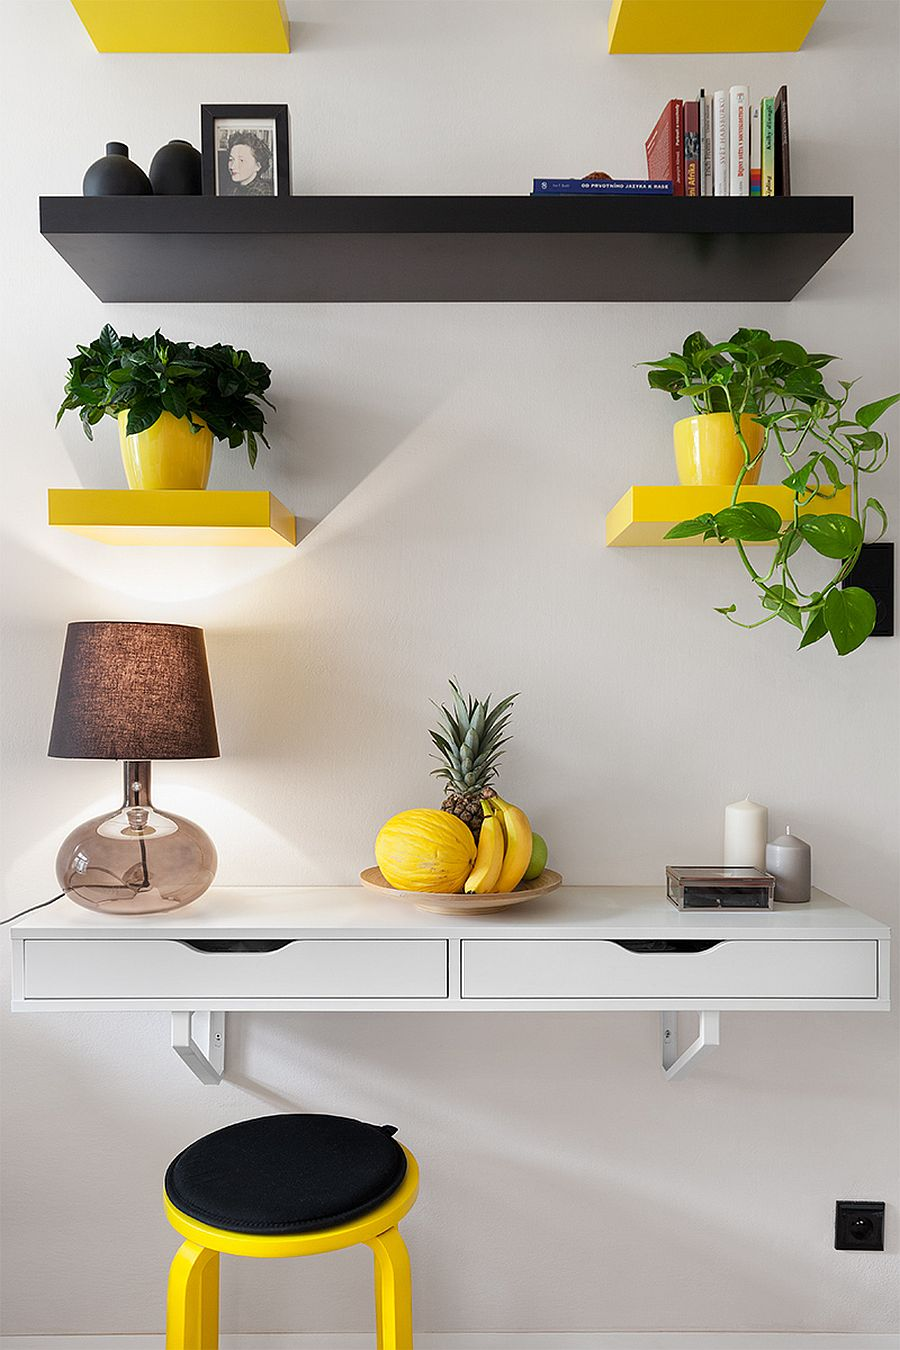 Yellow and black floating shelves act as plant holders inside this budget friendly apartment